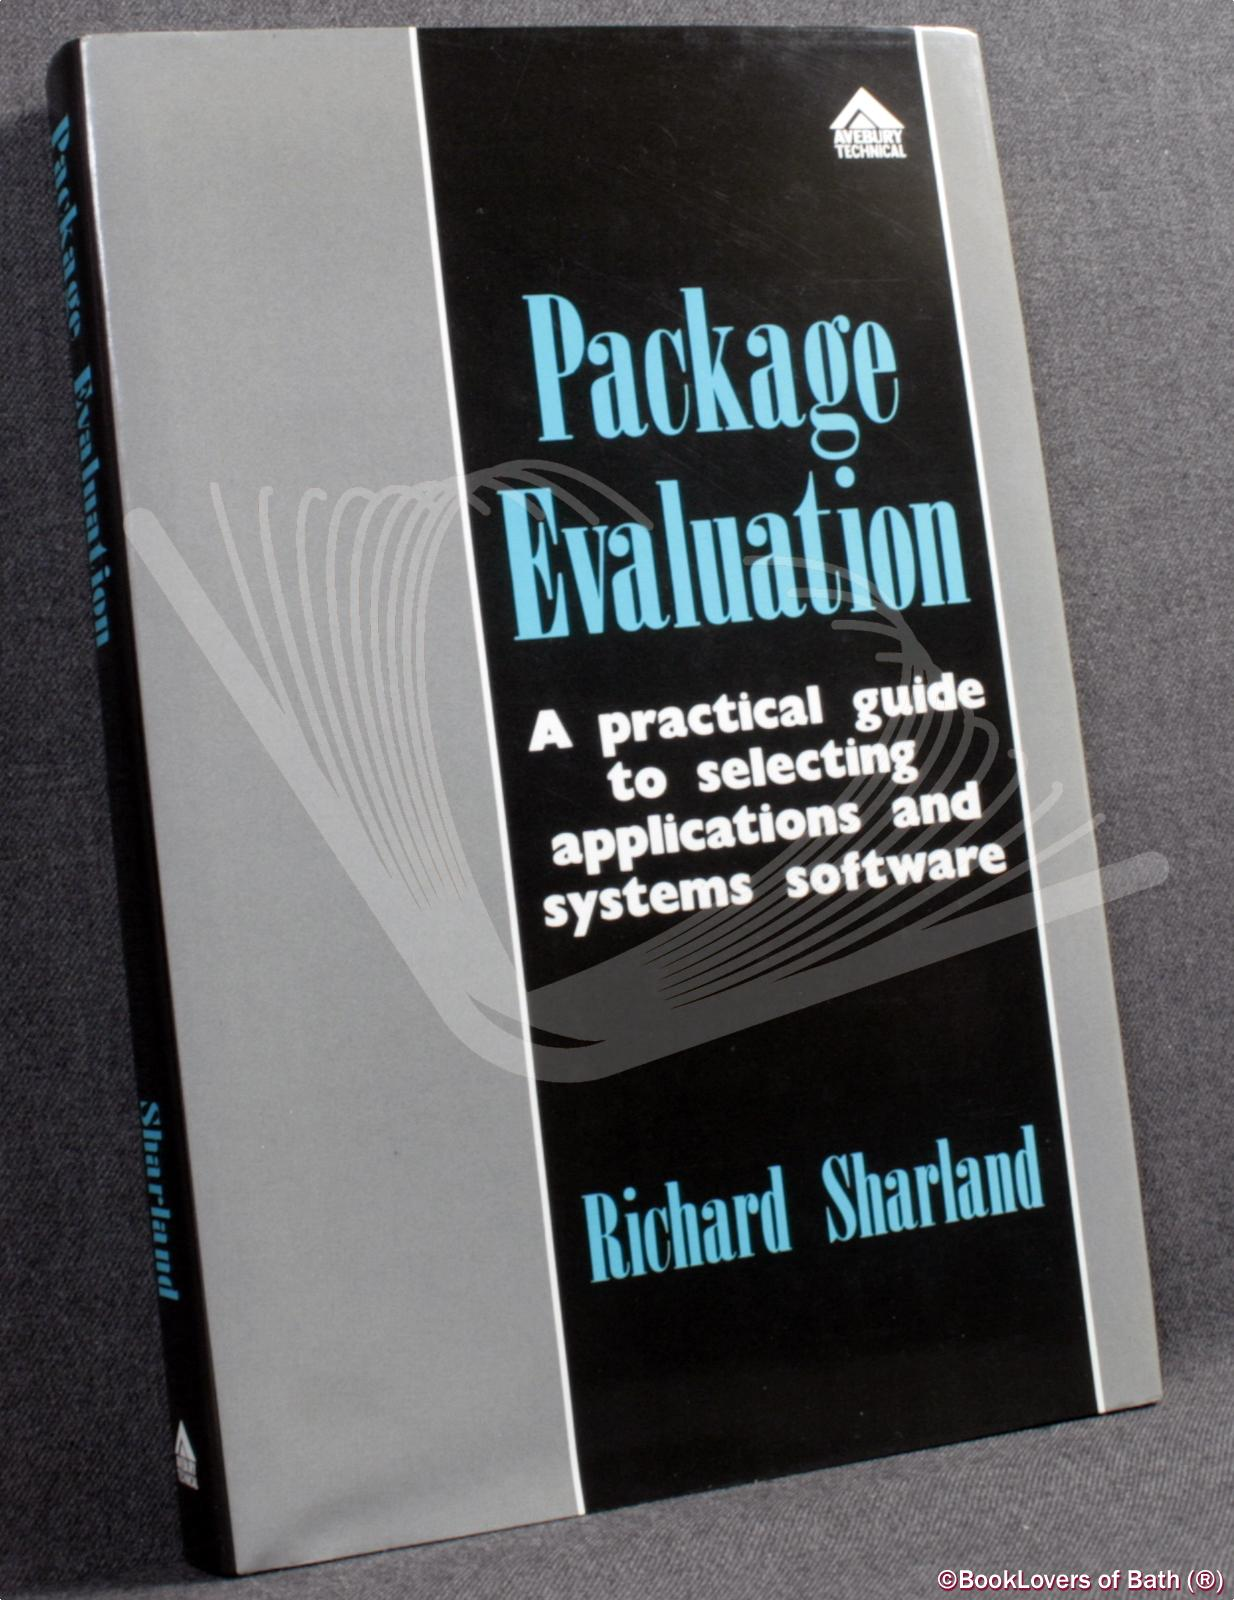 Package Evaluation: A Practical Guide to Selecting Application and Systems Software - Richard Sharland